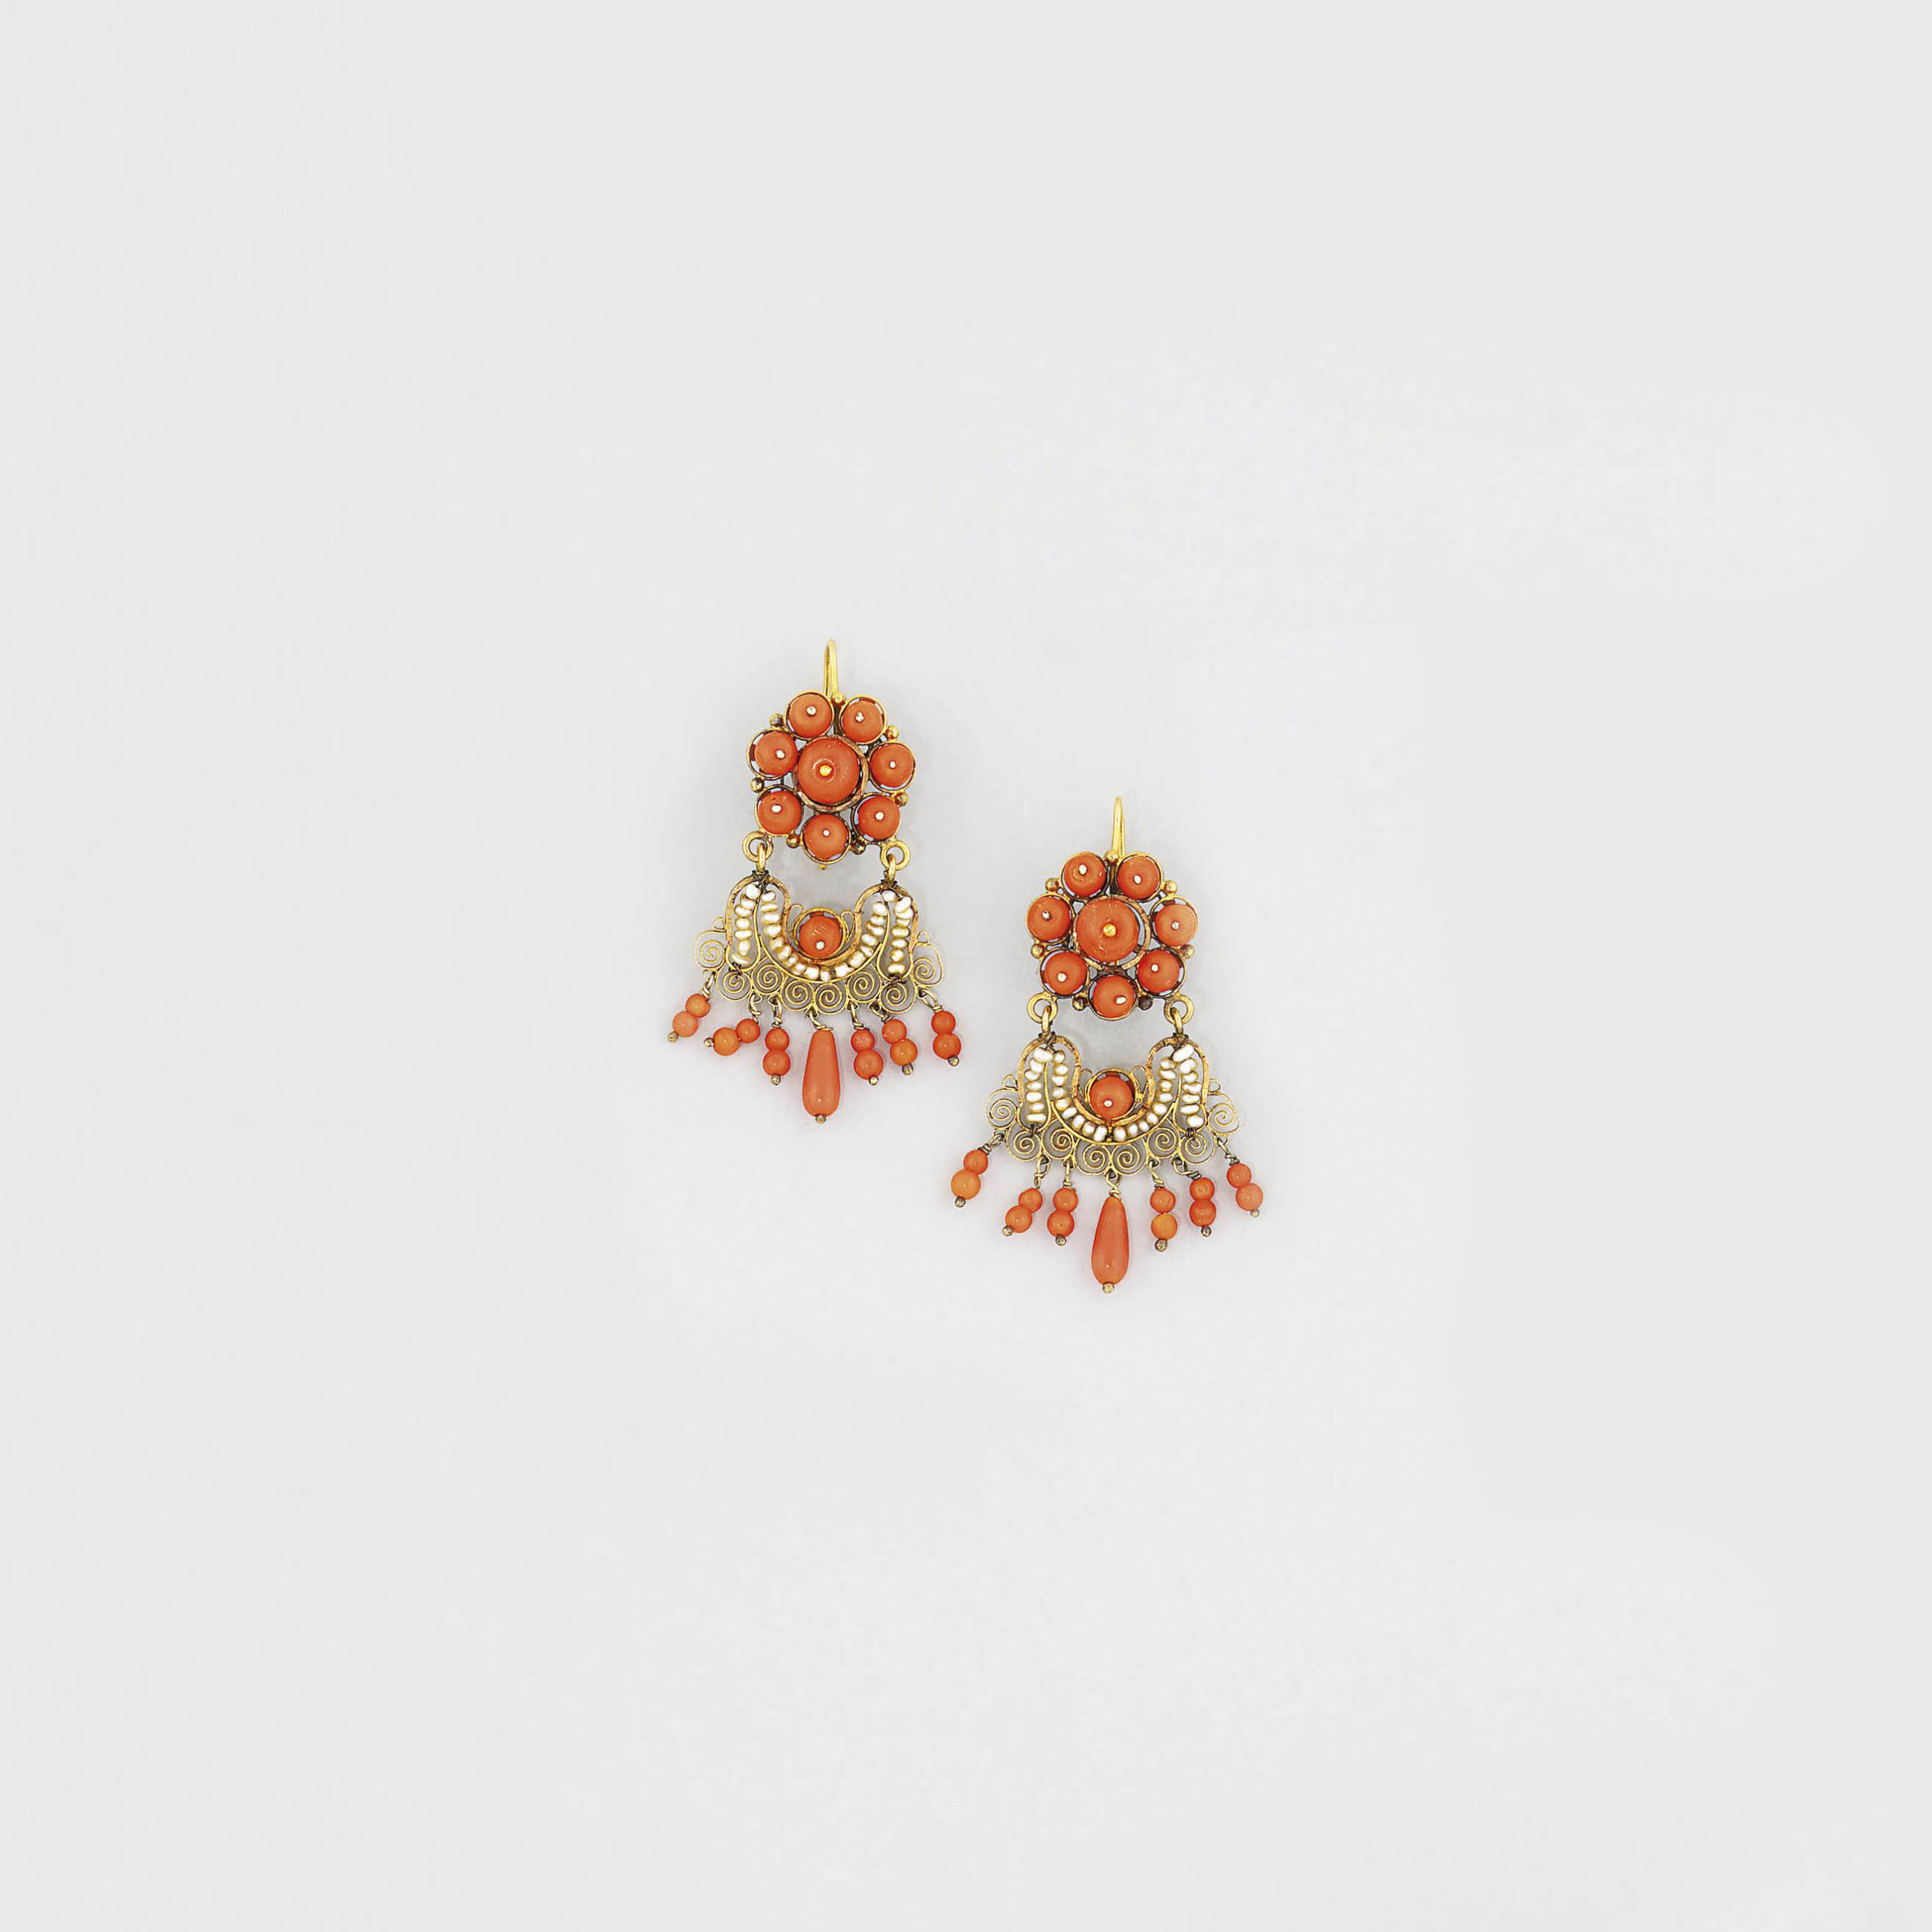 A pair of coral and seed pearl